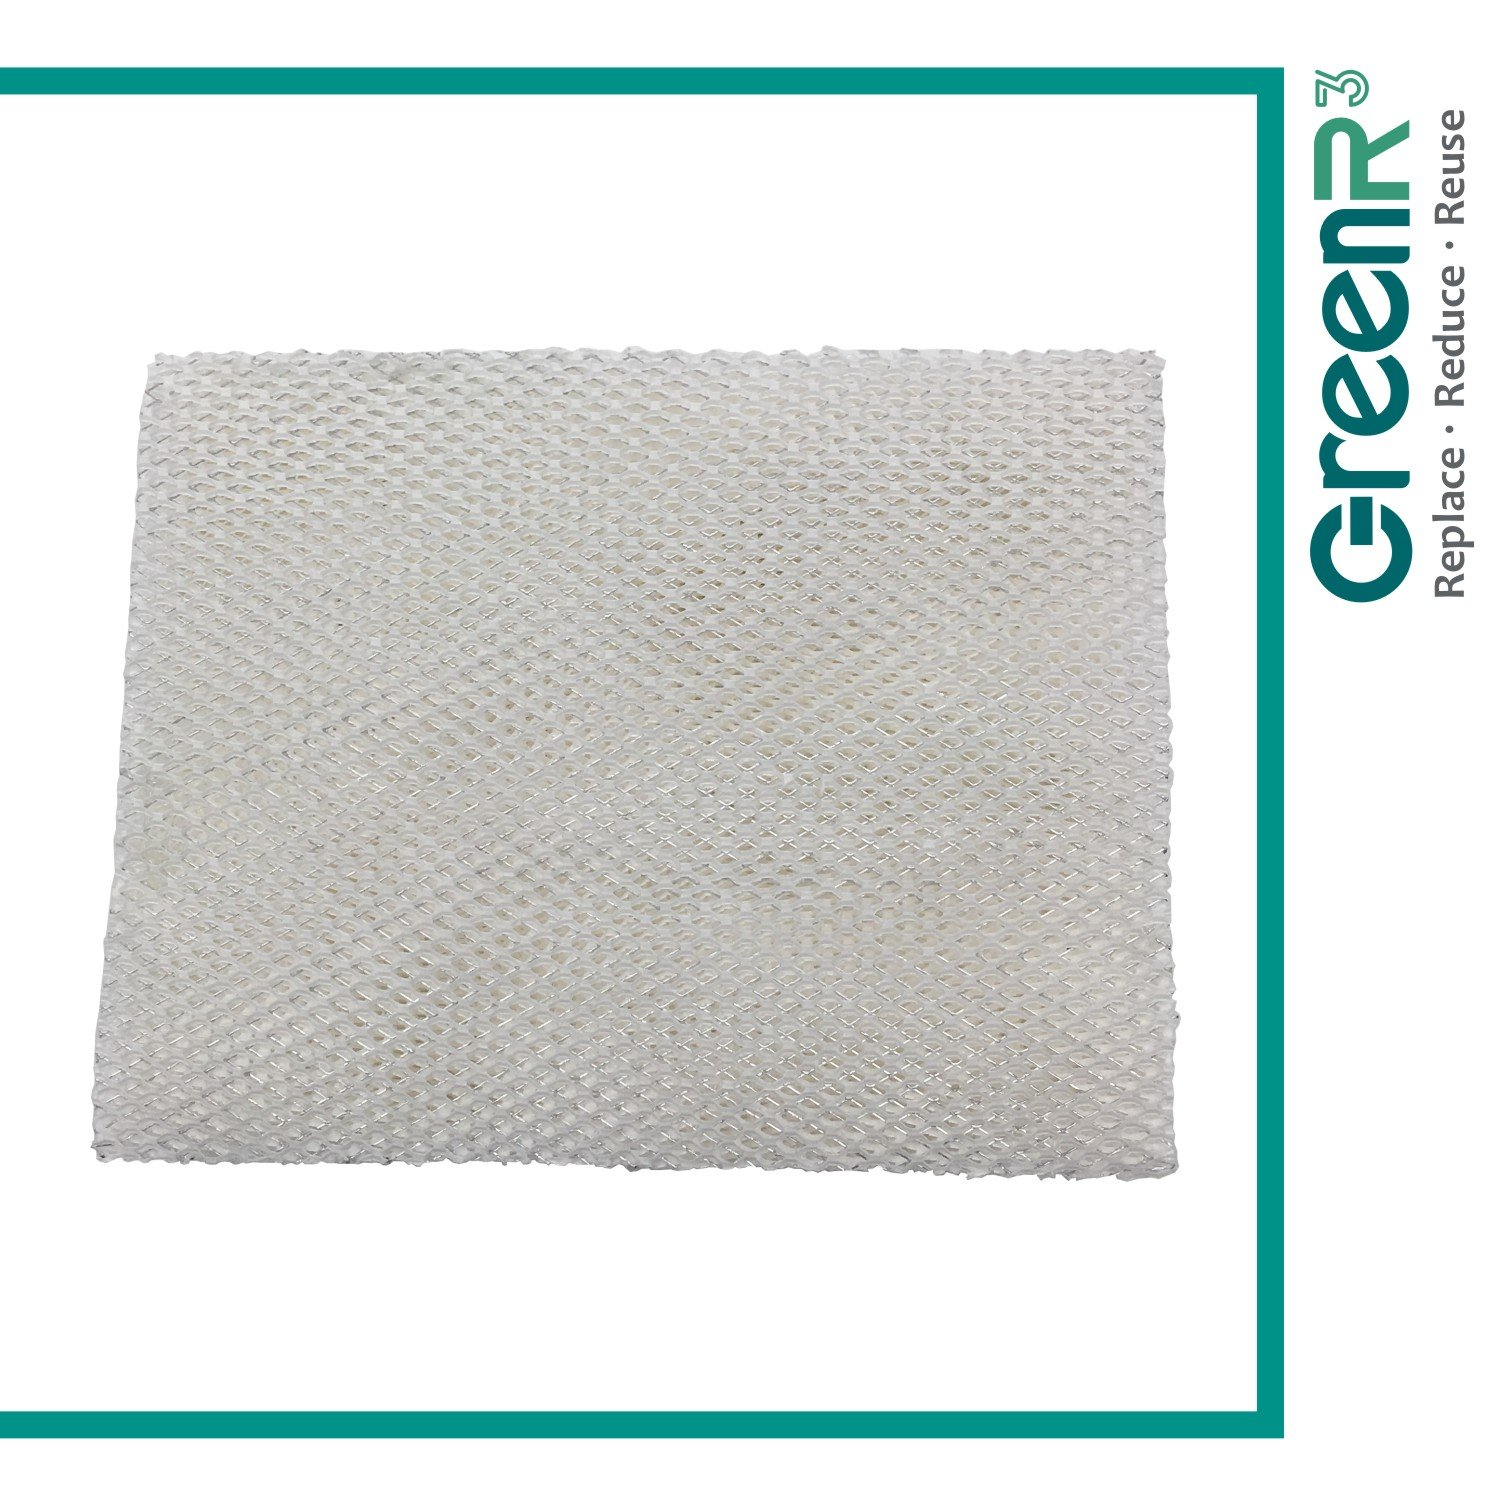 GreenR3 1-PACK Wick Filters Humidifiers for Aprilaire #45 Water Panel fits Aprilaire 400 Aprilaire 400A Aprilaire 400M Aprilaire S1-45 Model Series Replacement Parts Tool Accessories PN and more